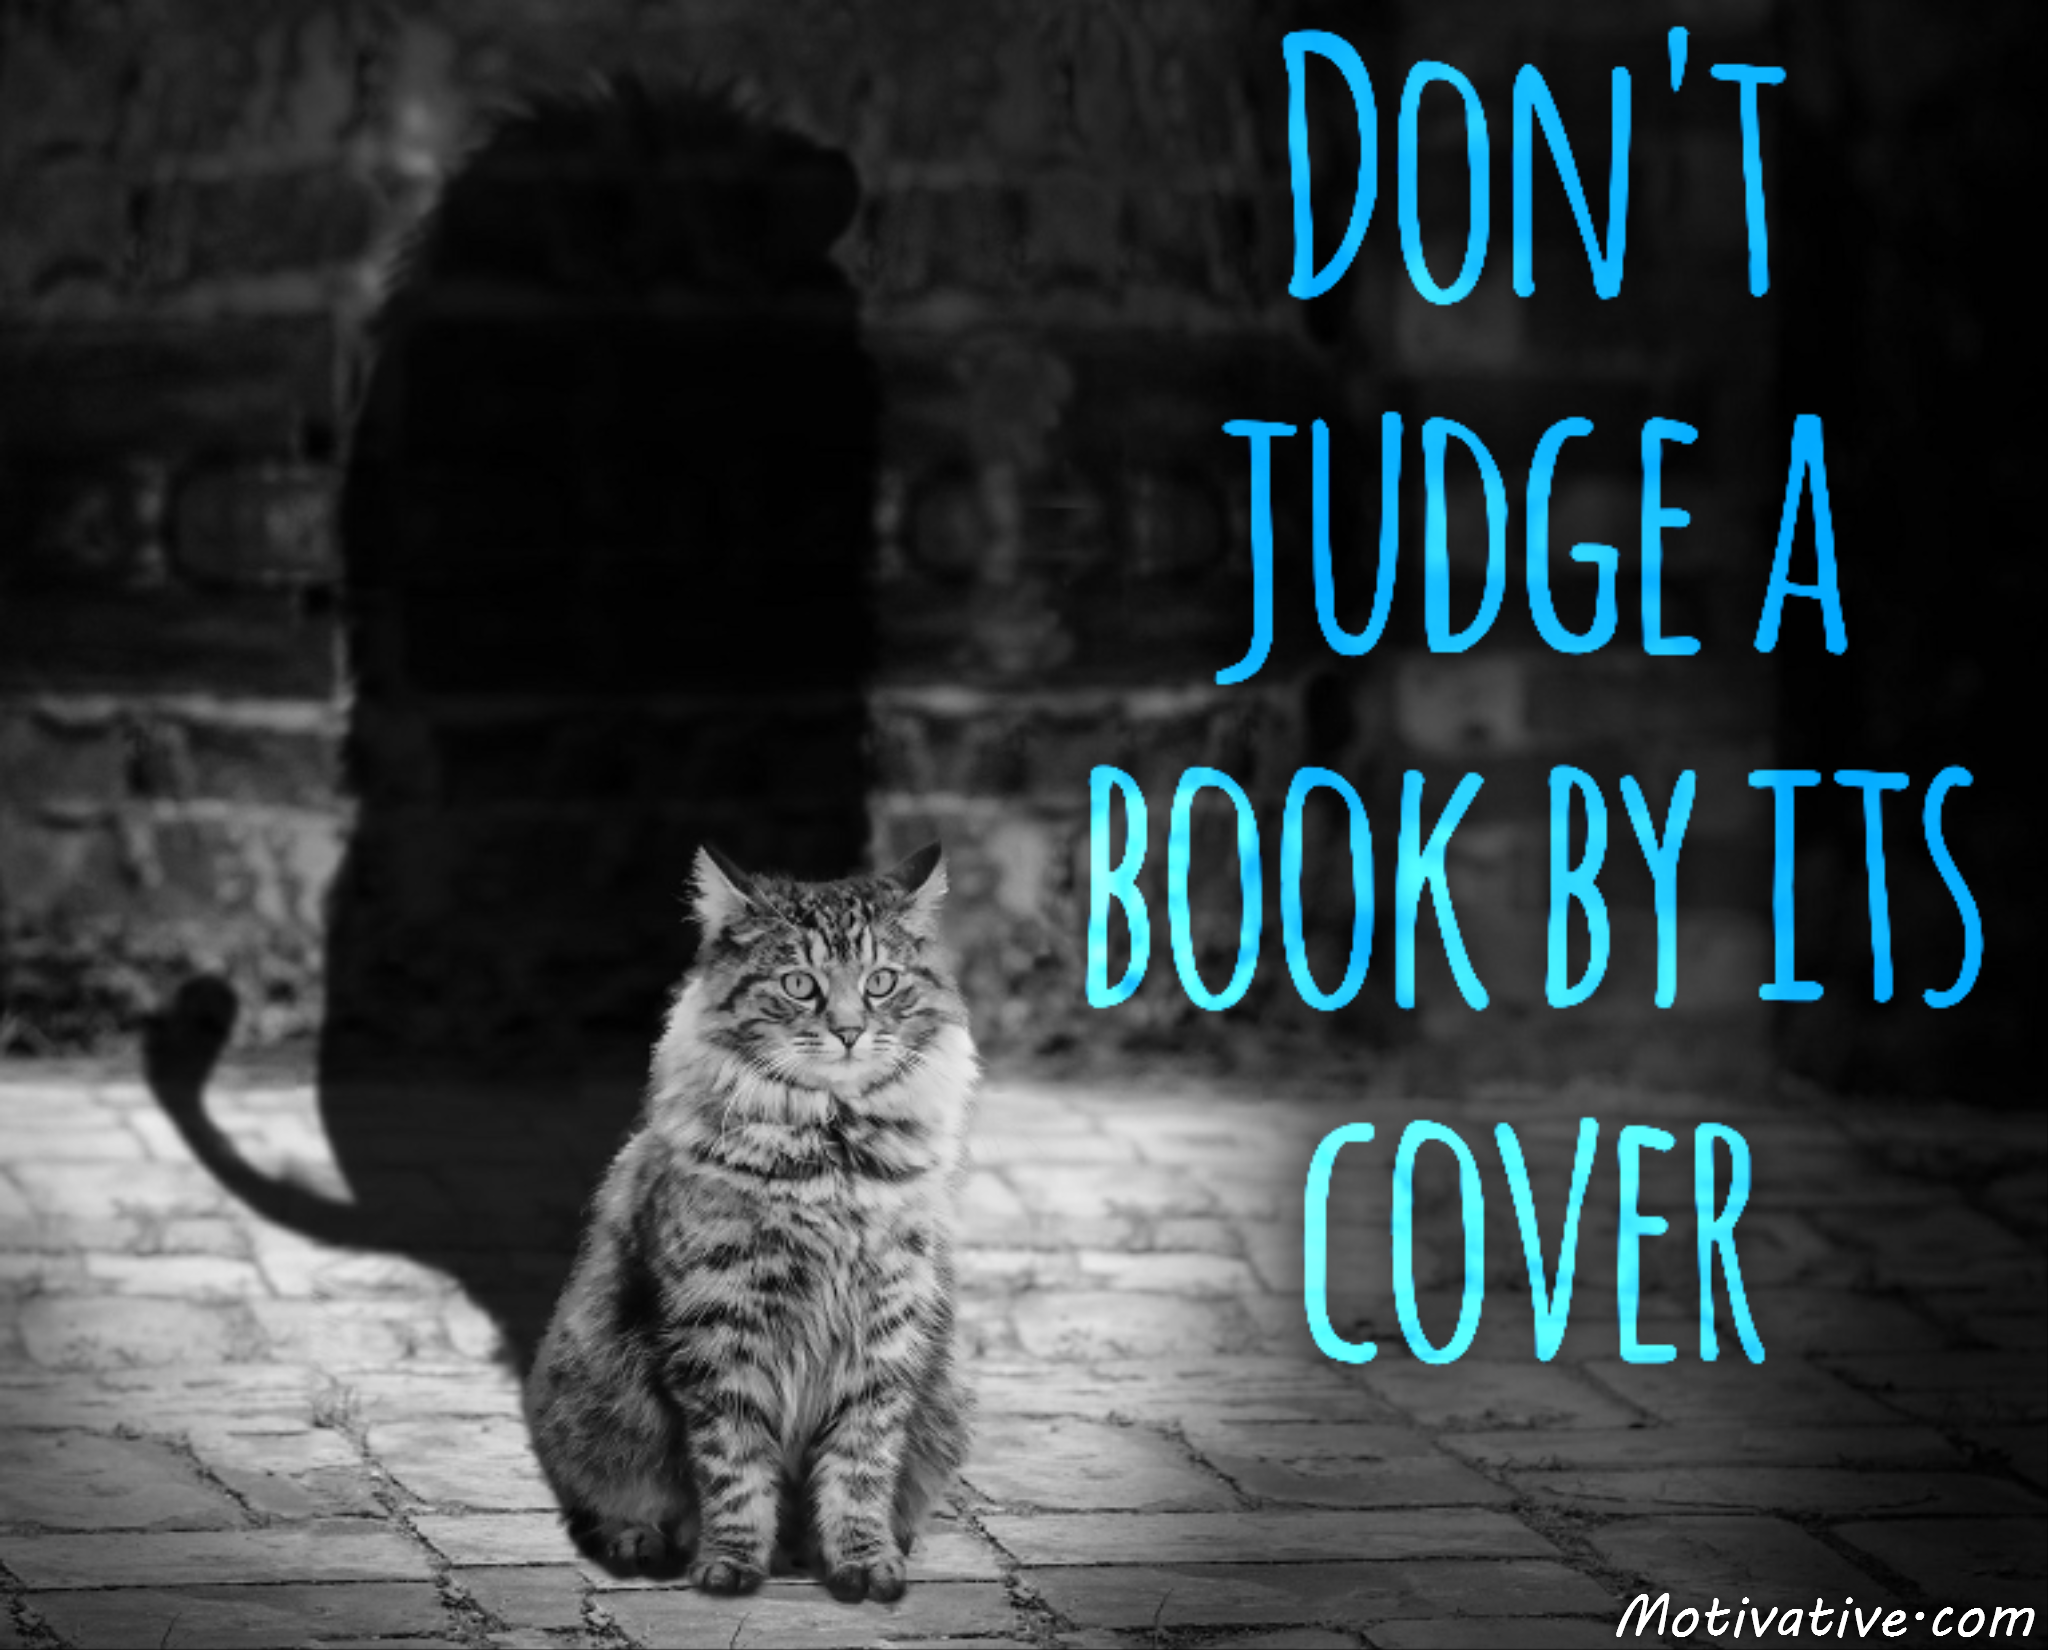 an essay on never judge a book by its cover Never judge a book by its cover this essay never judge a book by its cover and other 63,000+ term papers, college essay examples and free essays are available now on.